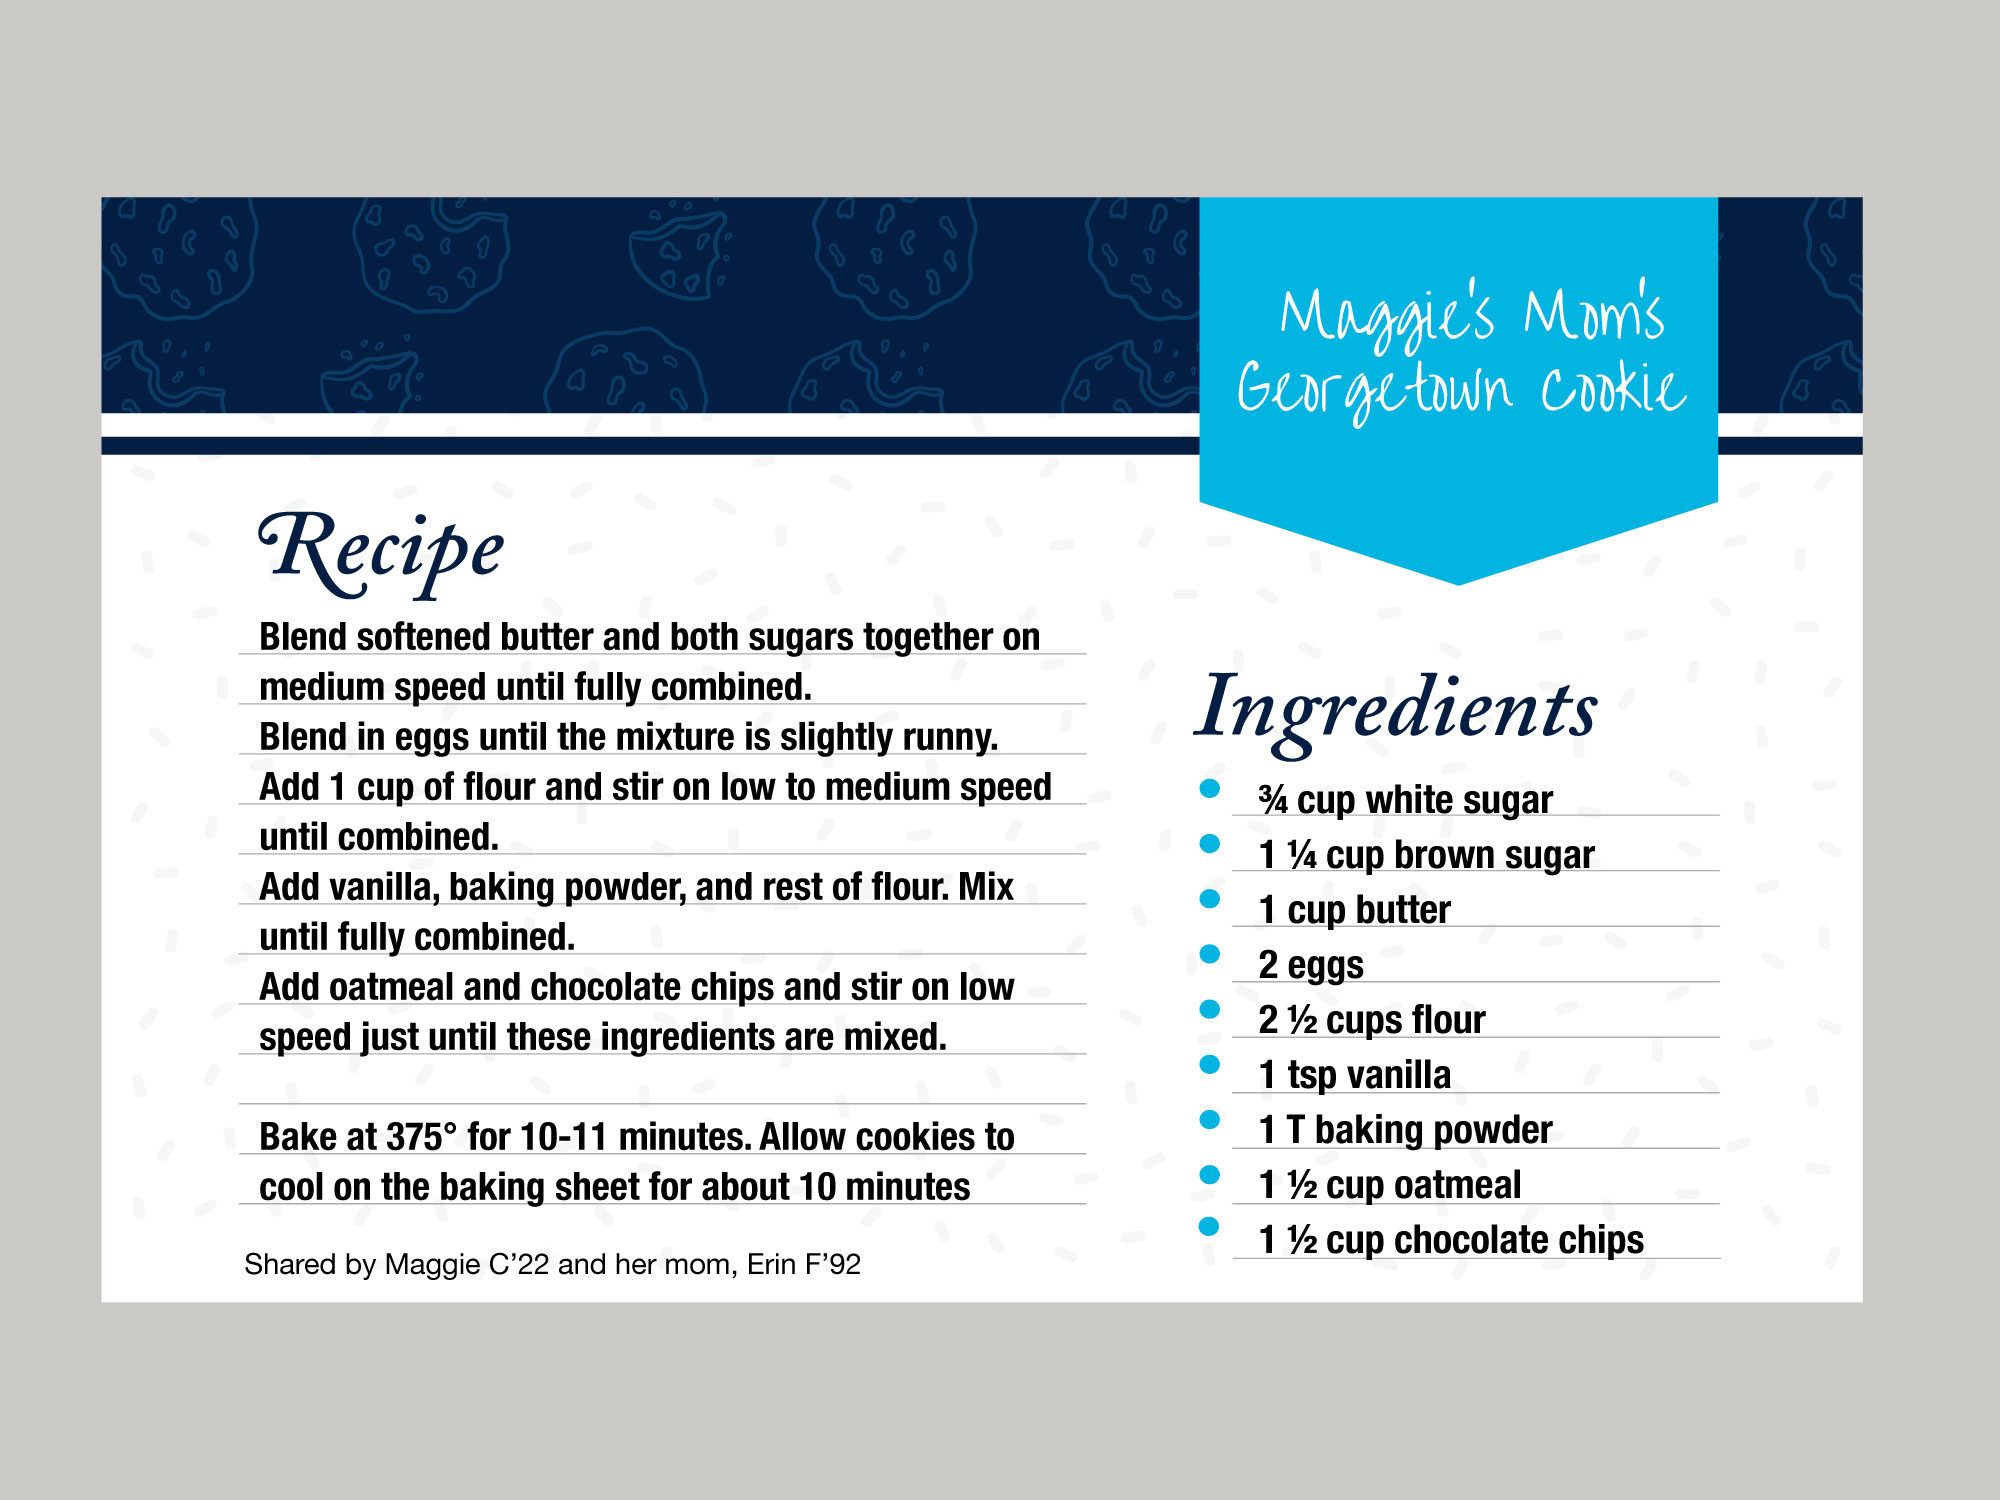 A recipe card displays the recipe for Georgetown Cookies